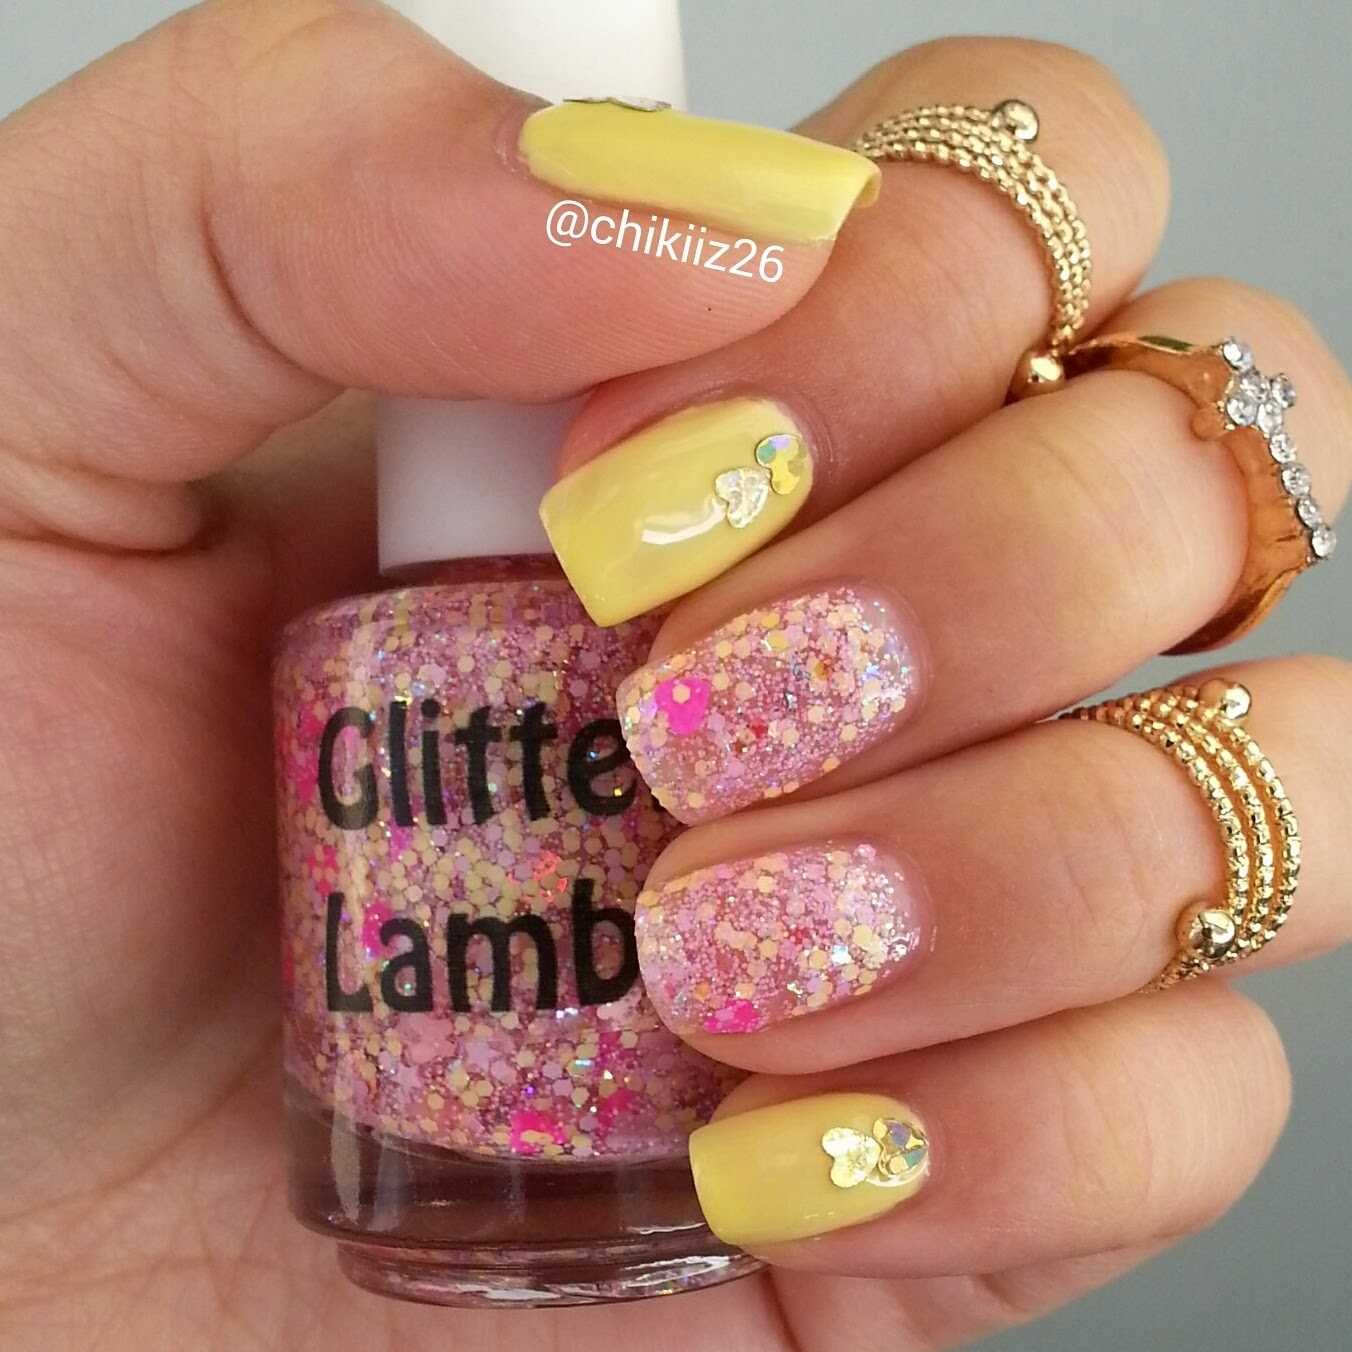 Pretty Please With Sugar On Top? Glitter Lambs Nail Polish Worn by @Chikiiz26